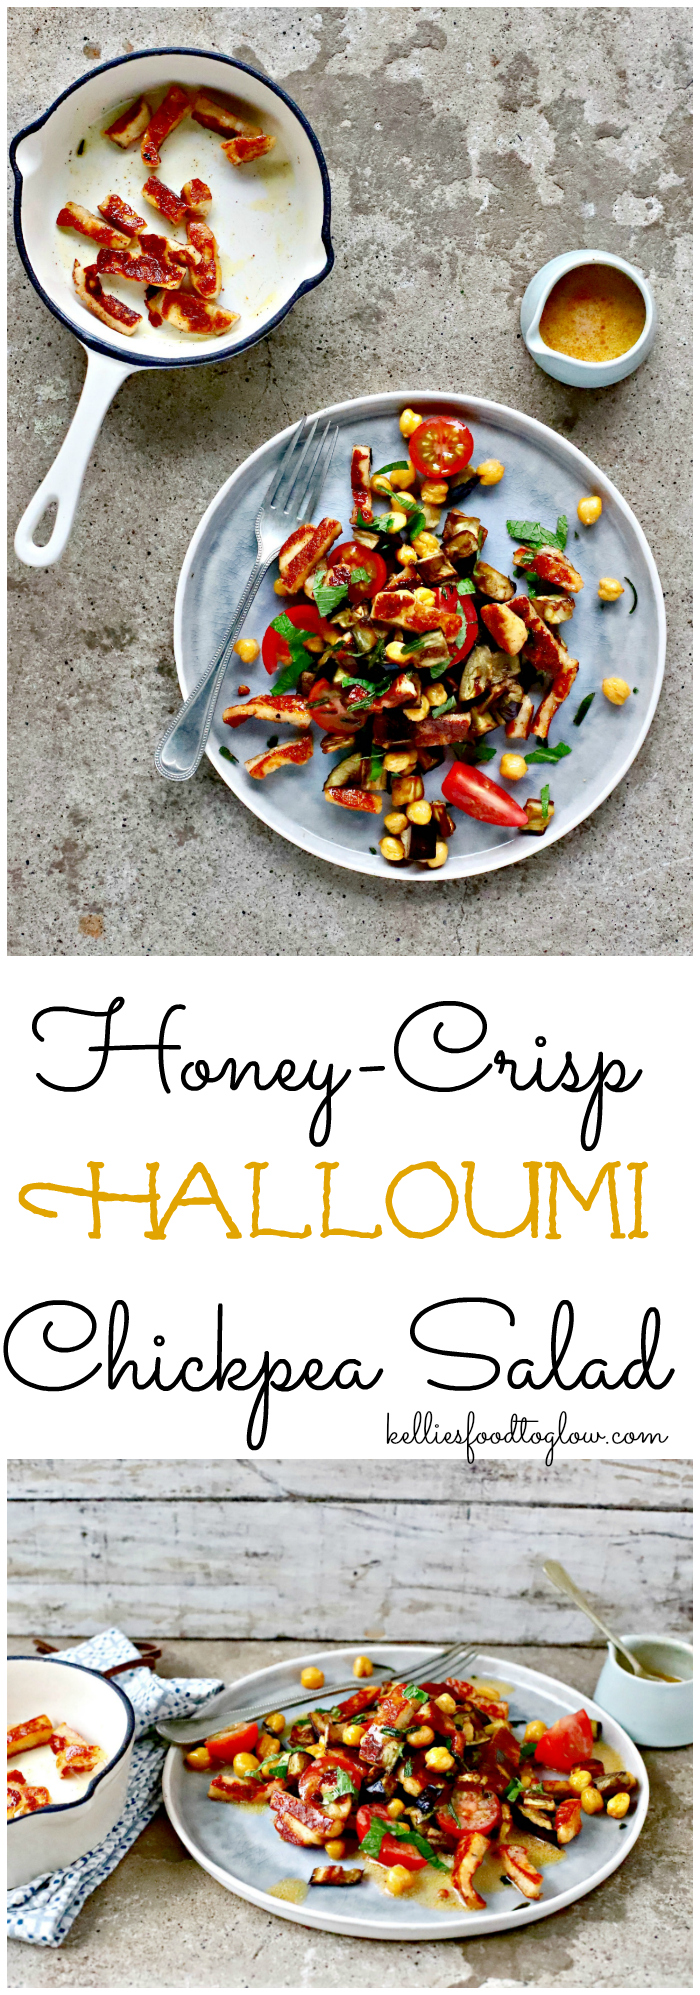 Think beyond lettuce and cucumber to elevate your summer salad game. Roasted #chickpeas, eggplant and smoky, honey-crisped #halloumi will become your go-to main course #salad for warm days and cool evenings. #summerfood #vegetarian